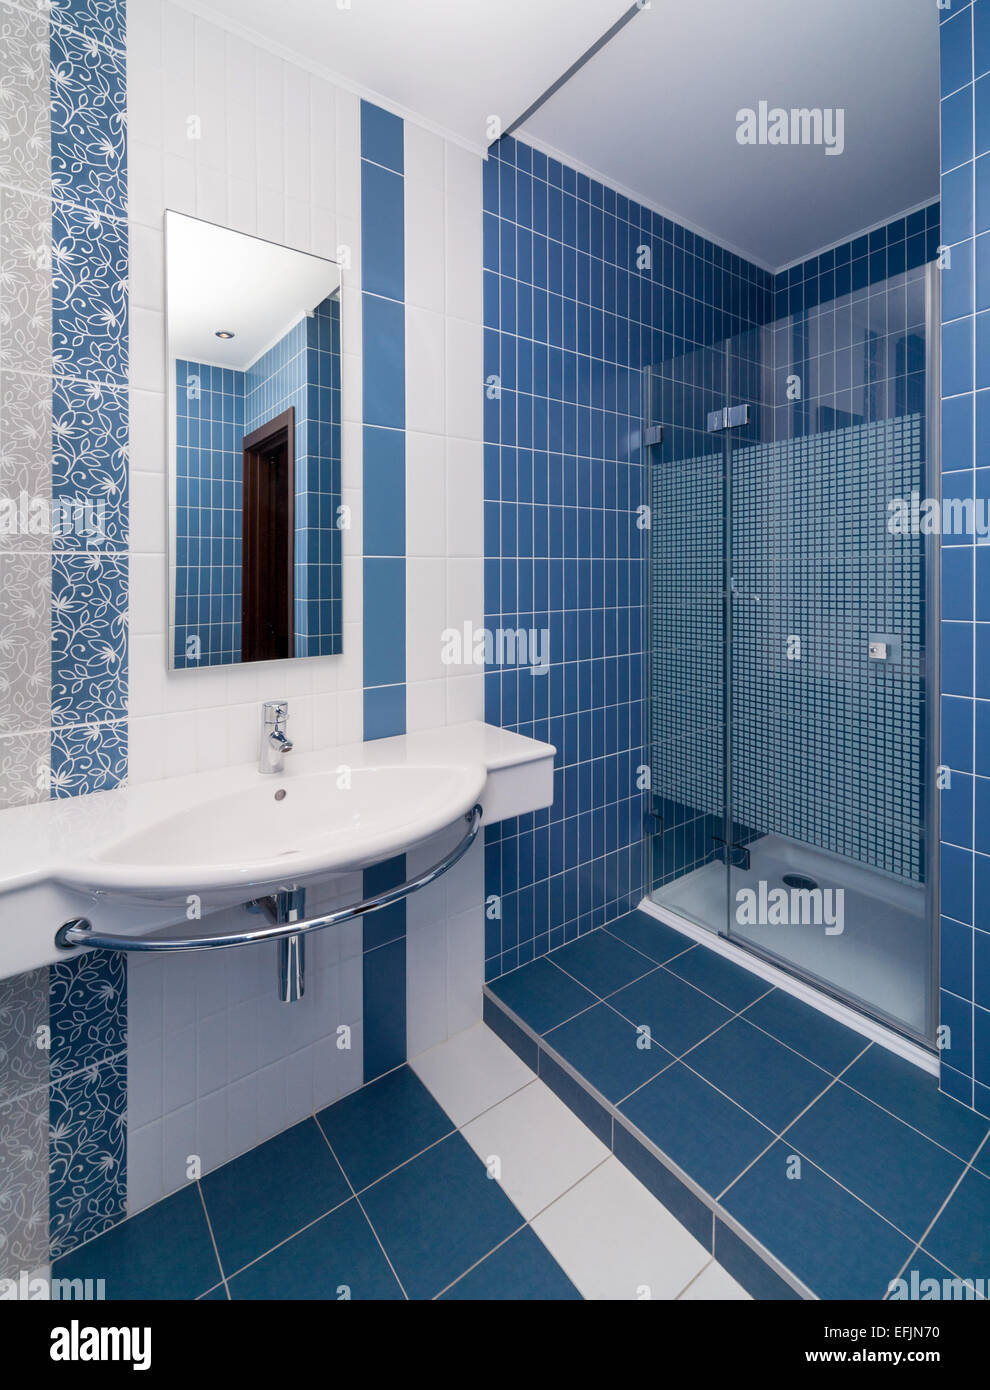 Modern bathroom toled with white and blue tiles Stock Photo ...